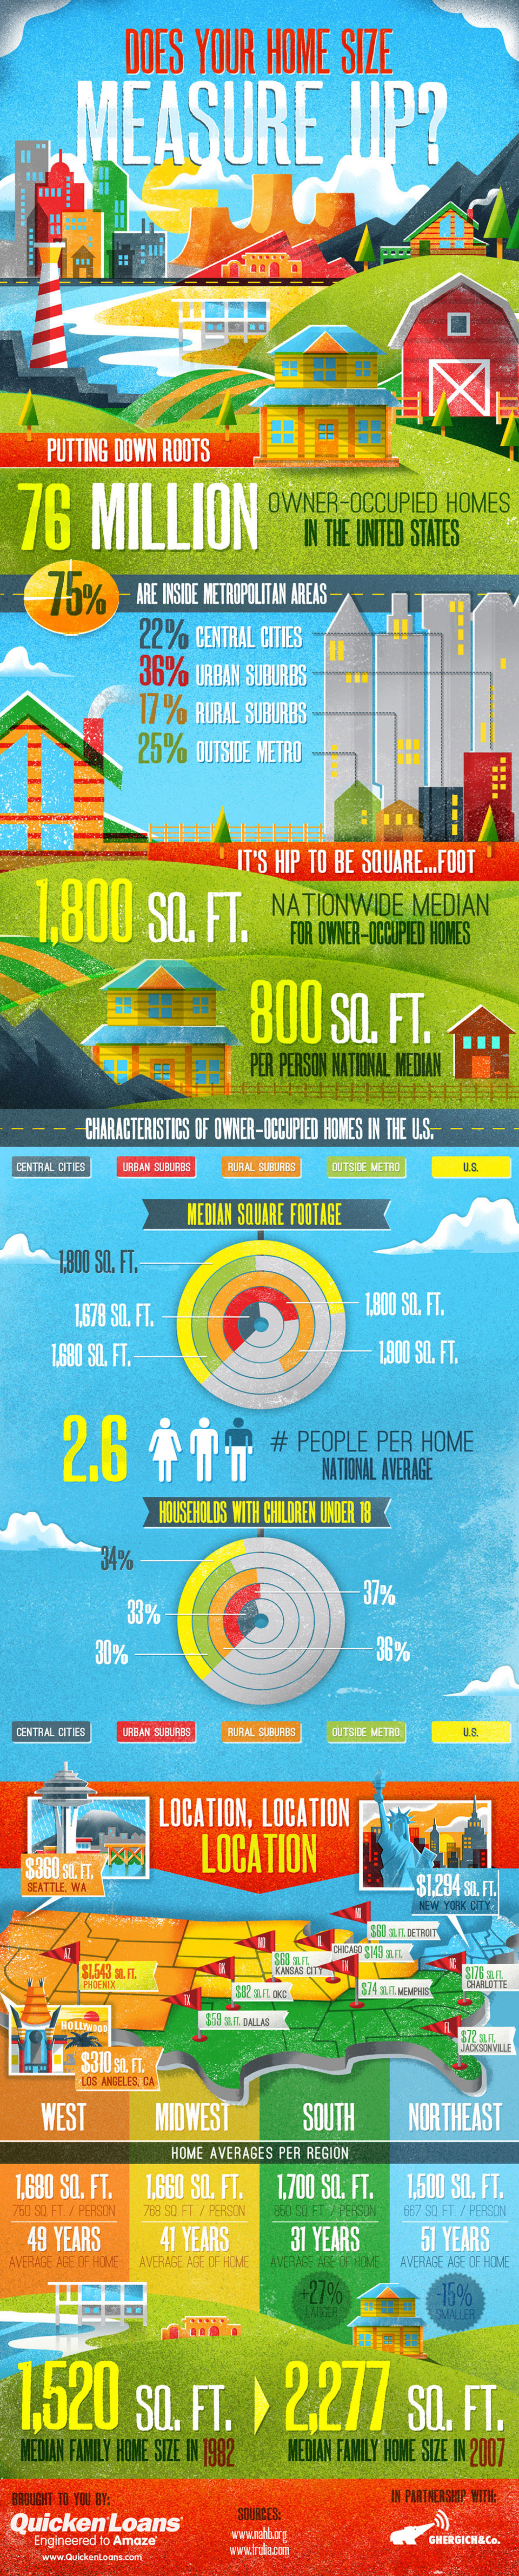 Does Your Home Size Measure Up? Infographic